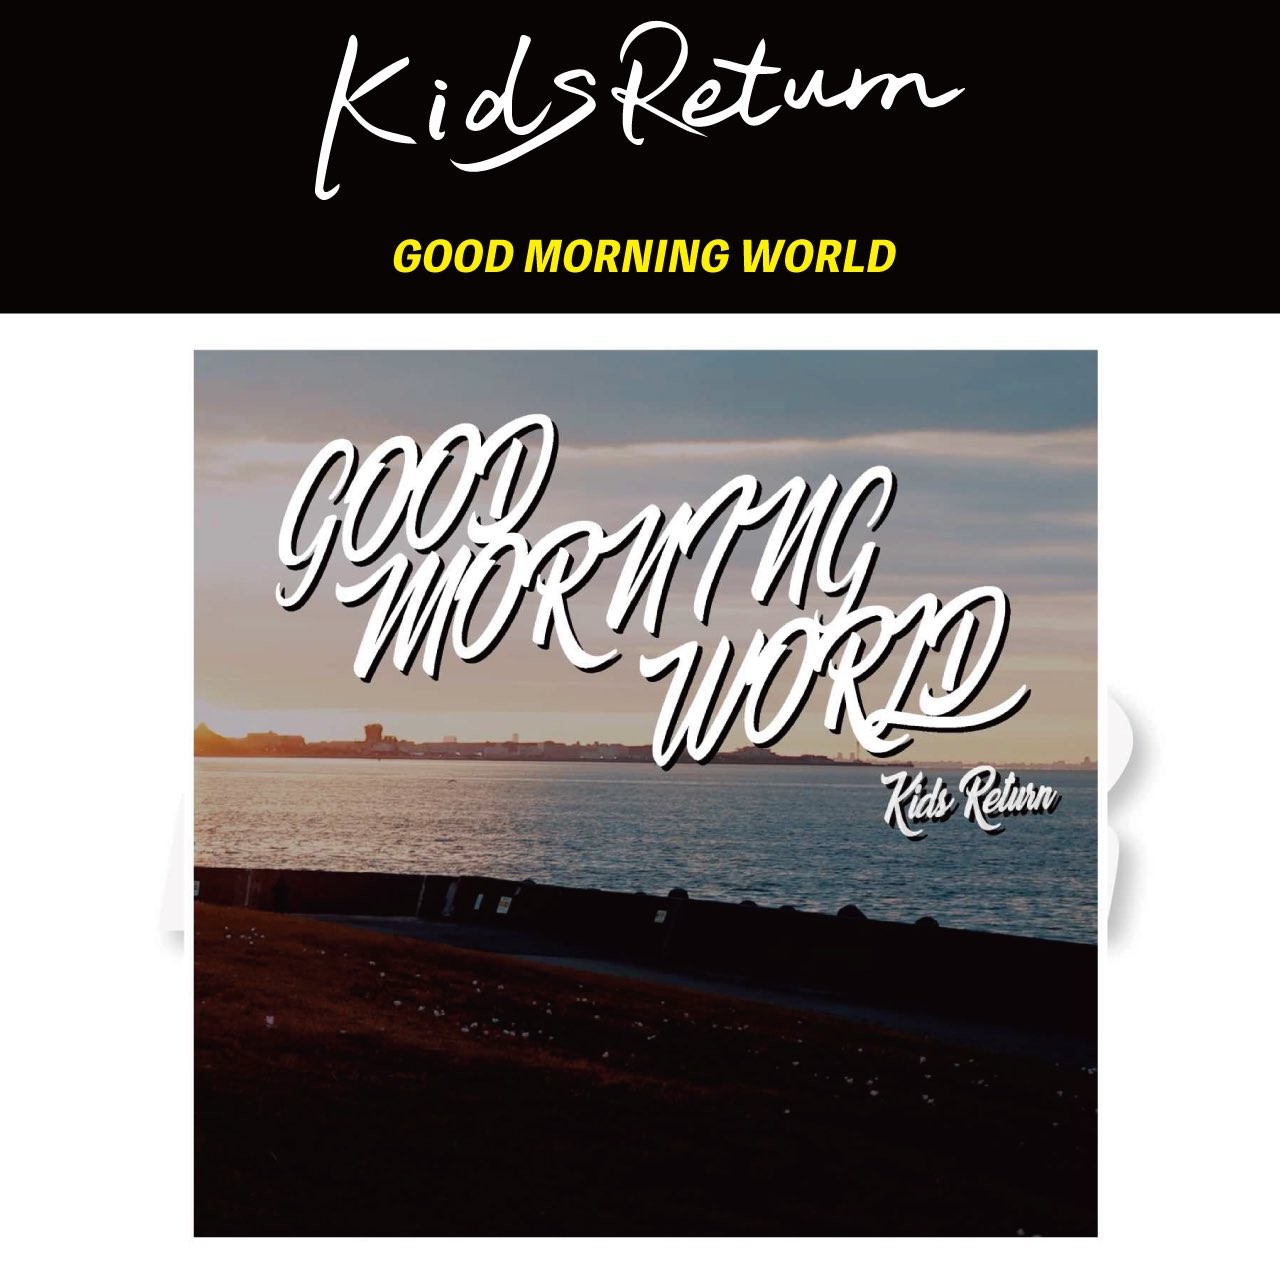 Kids Return GOOD MORNING WORLD